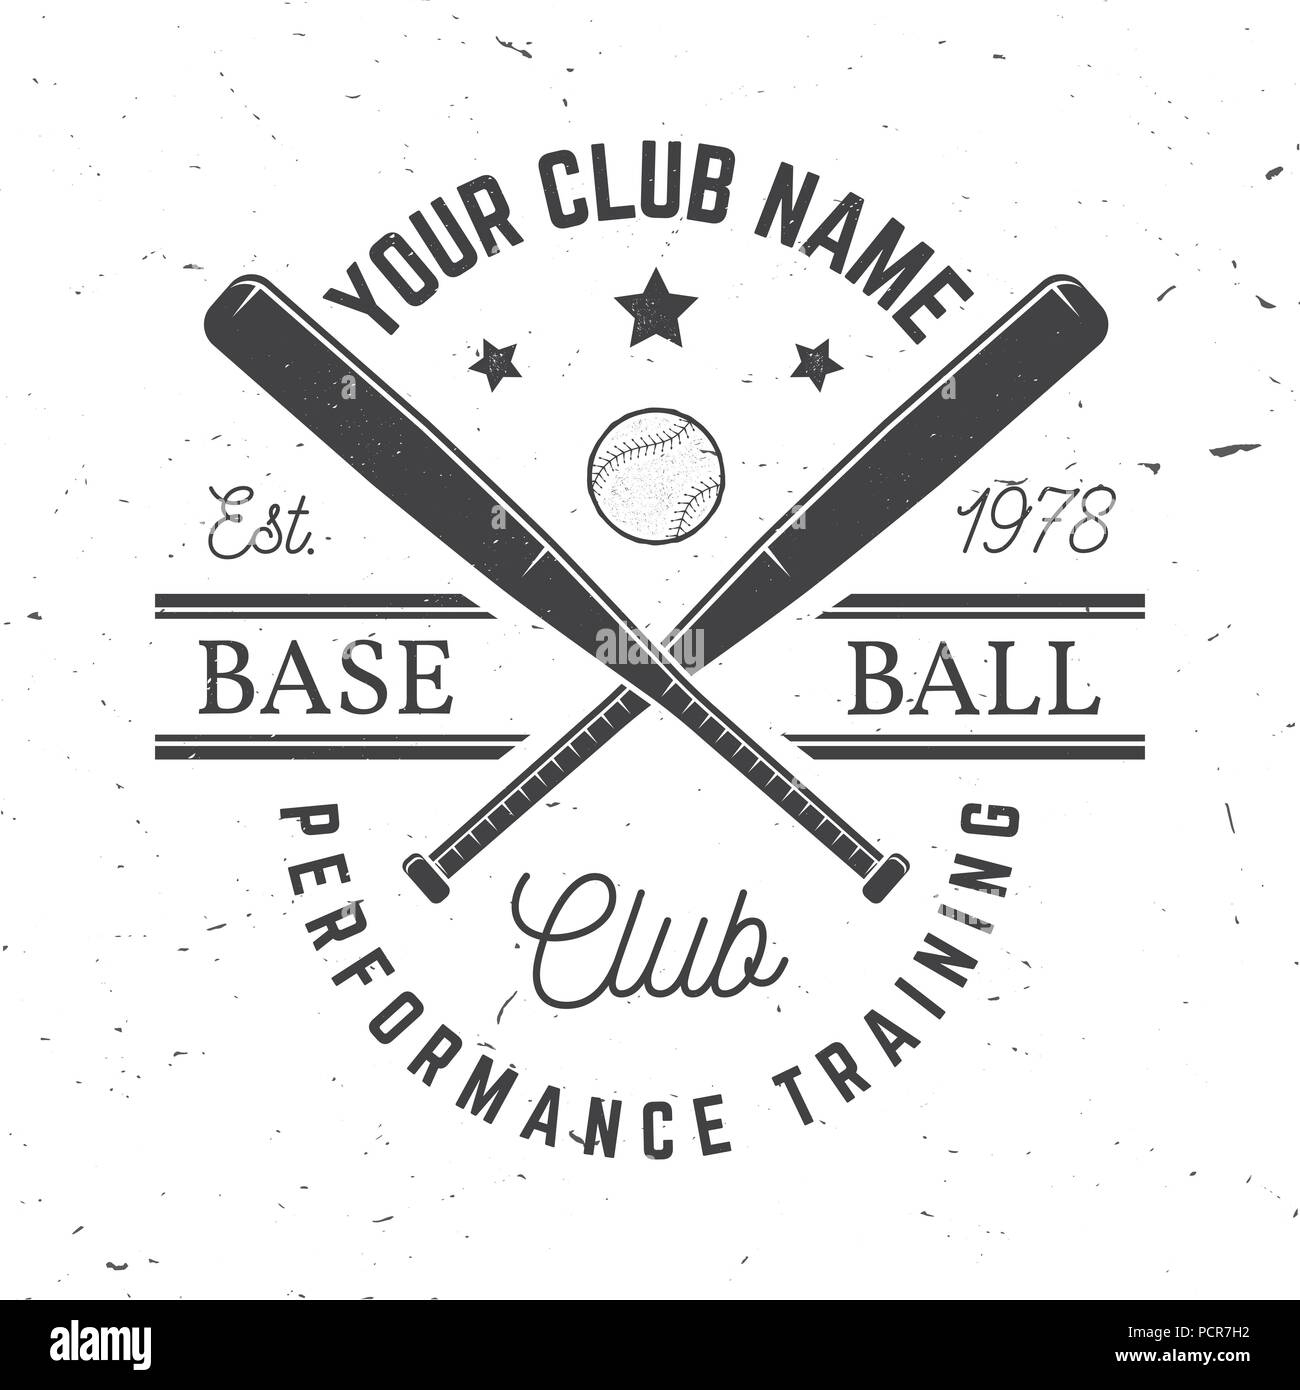 Baseball club badge  Vector illustration  Concept for shirt or logo